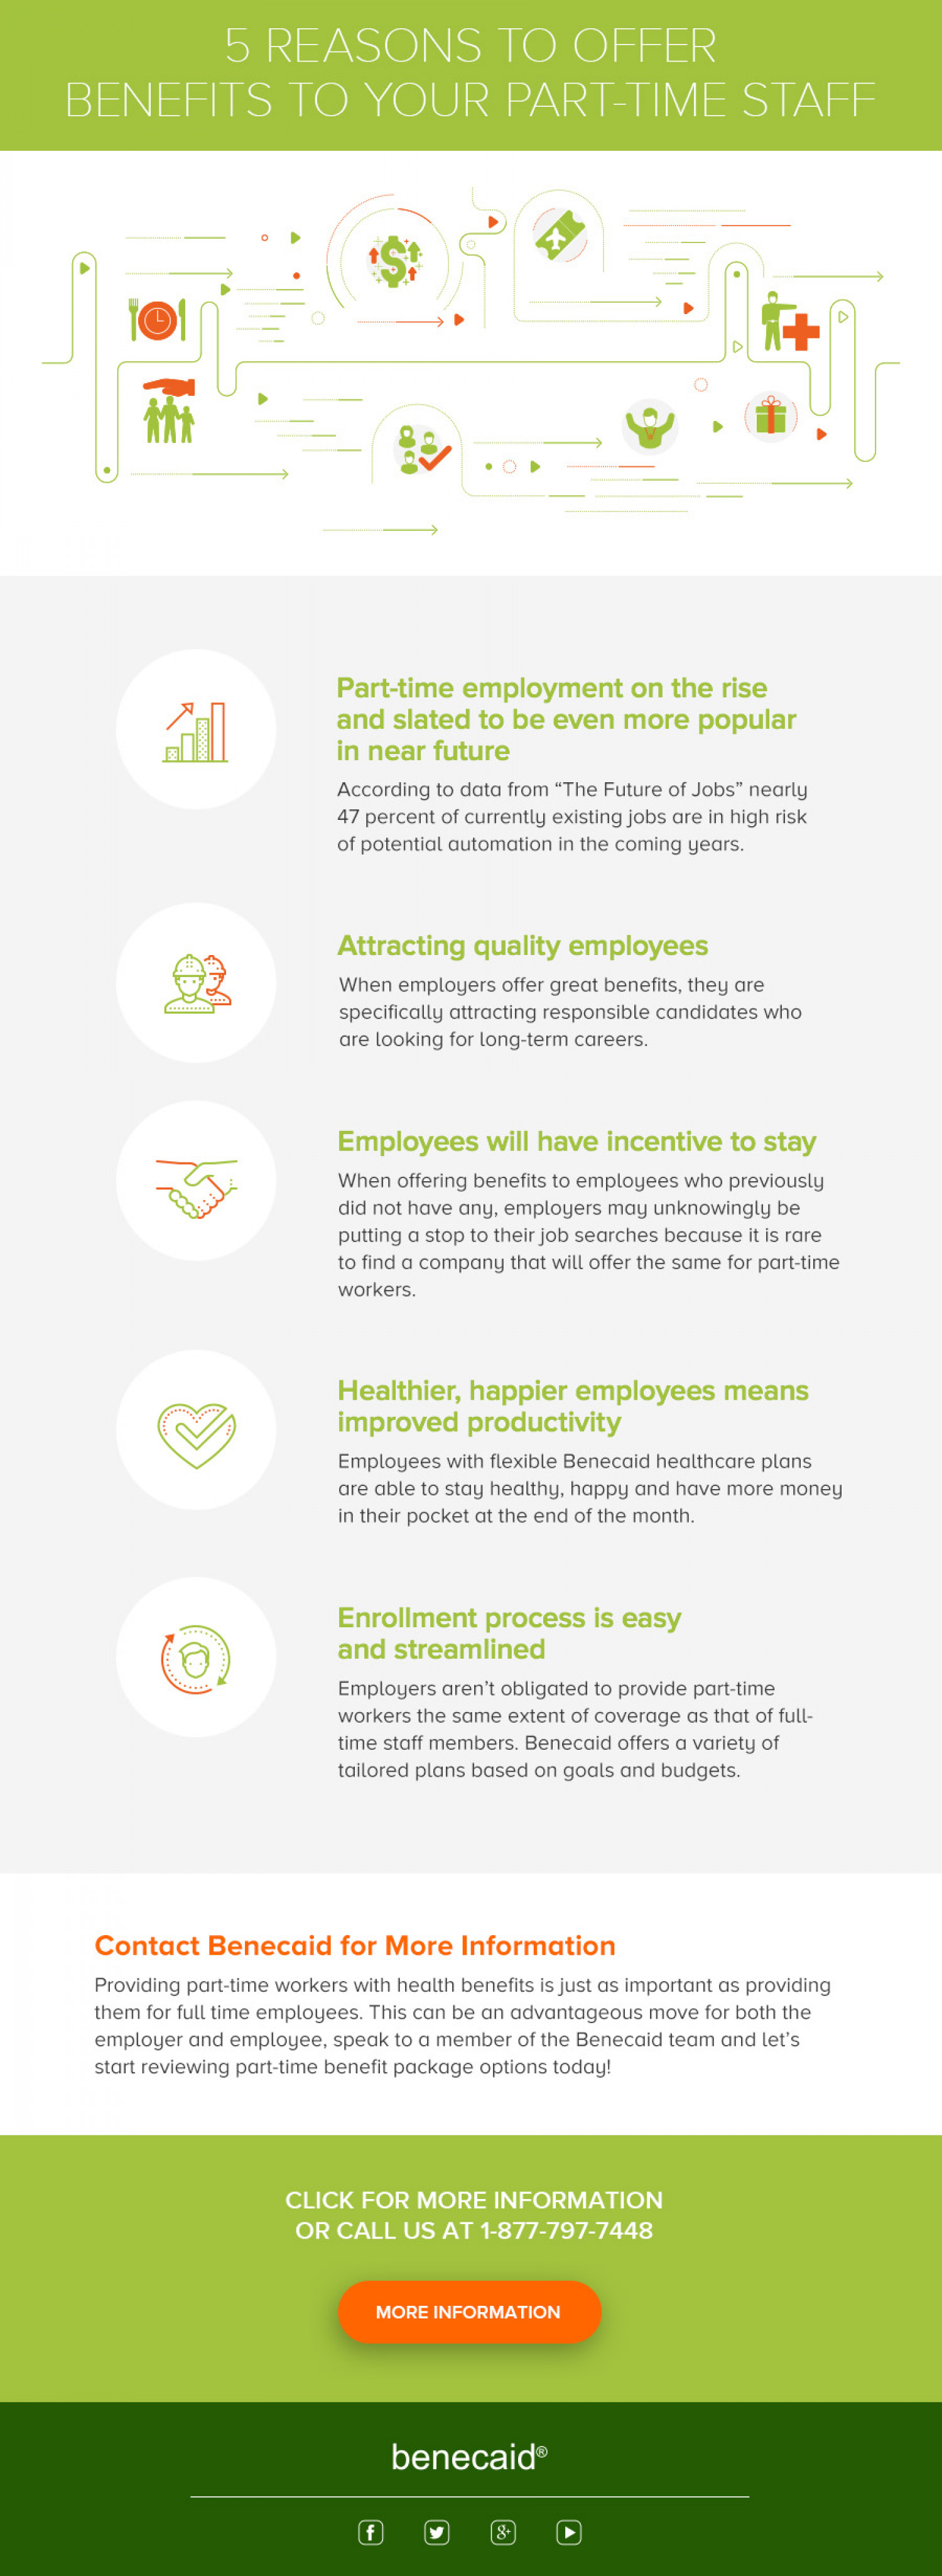 5 Reasons to Offer Benefits to Your Part-Time Staff Infographic